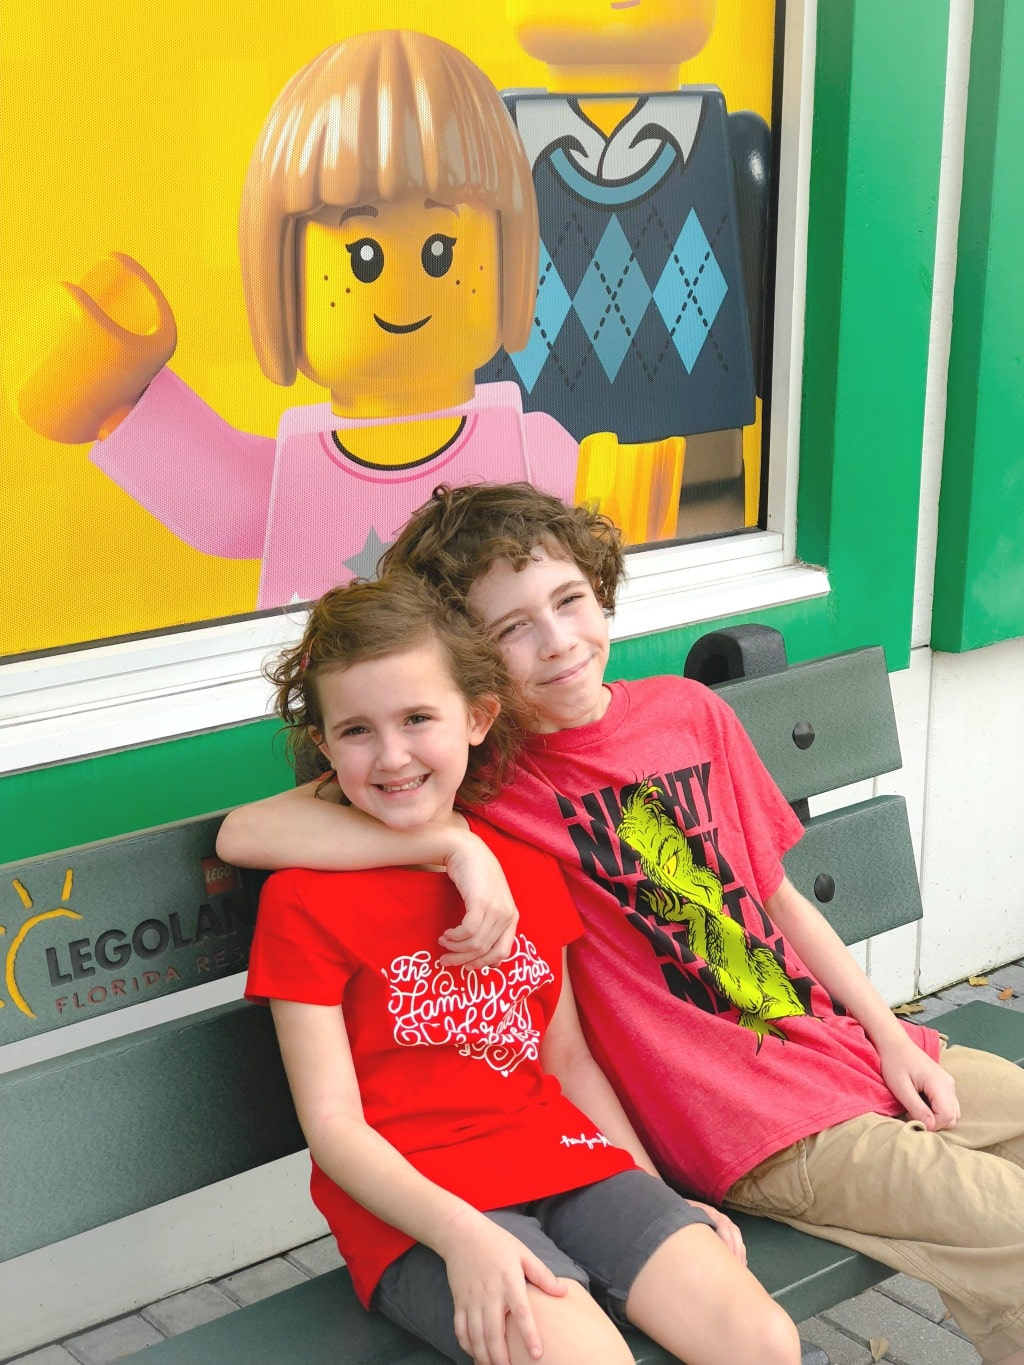 family fun at legoland florida